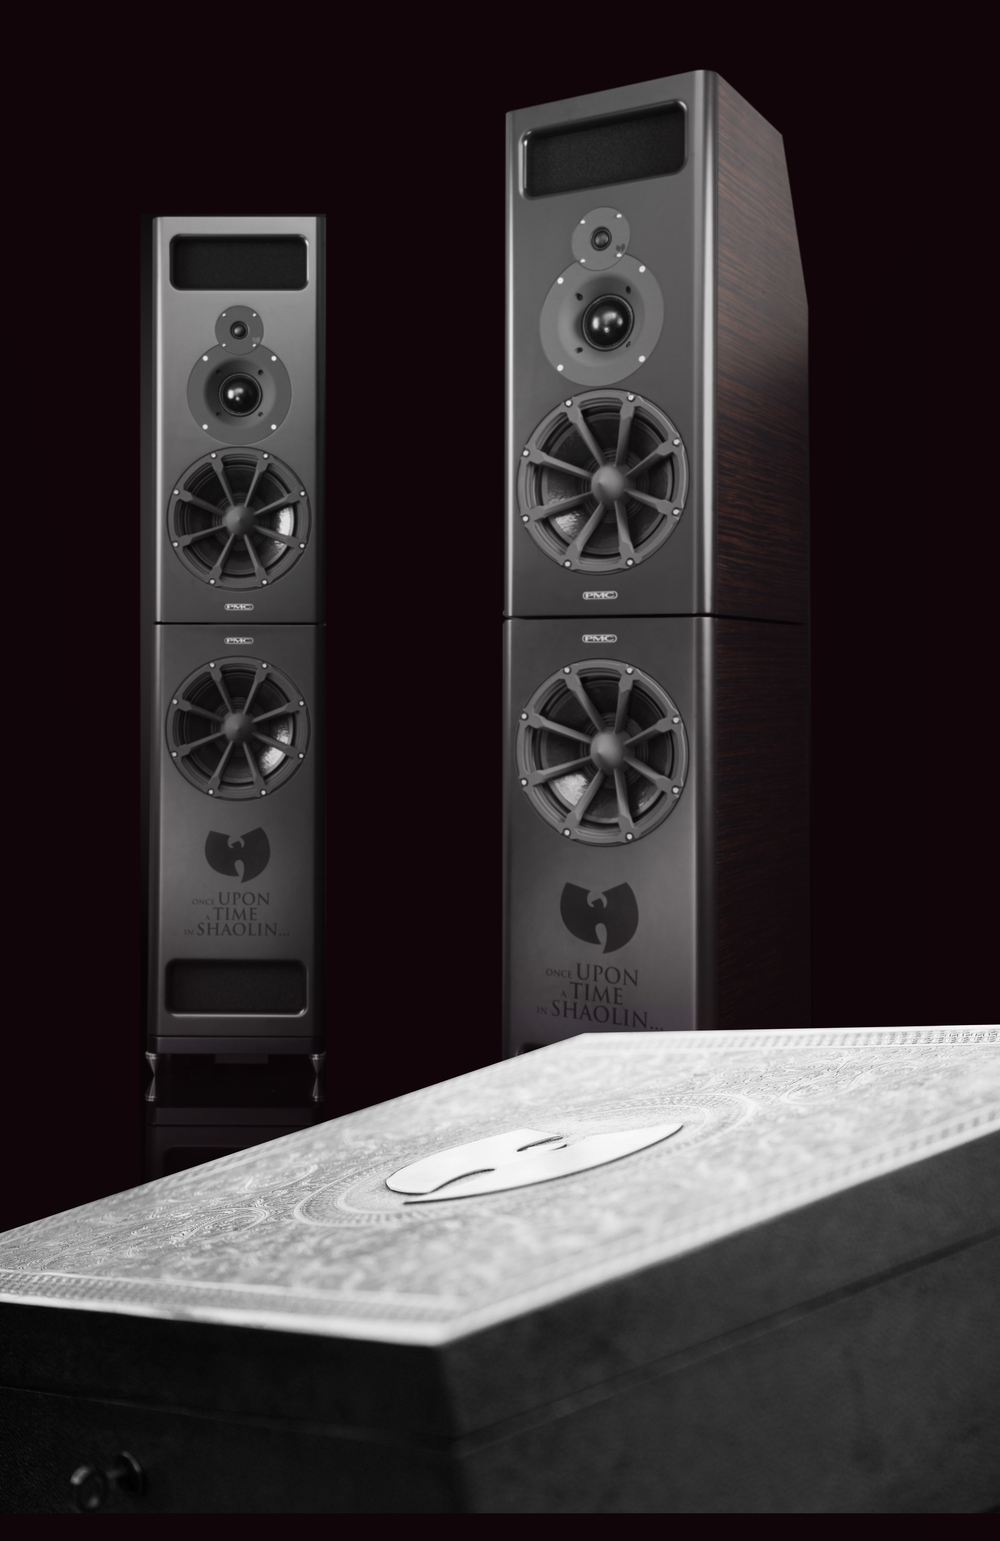 PMC MB2-XBD speakers and the hand carved nickel-silver casing designed by the British Moroccan artist Yahy